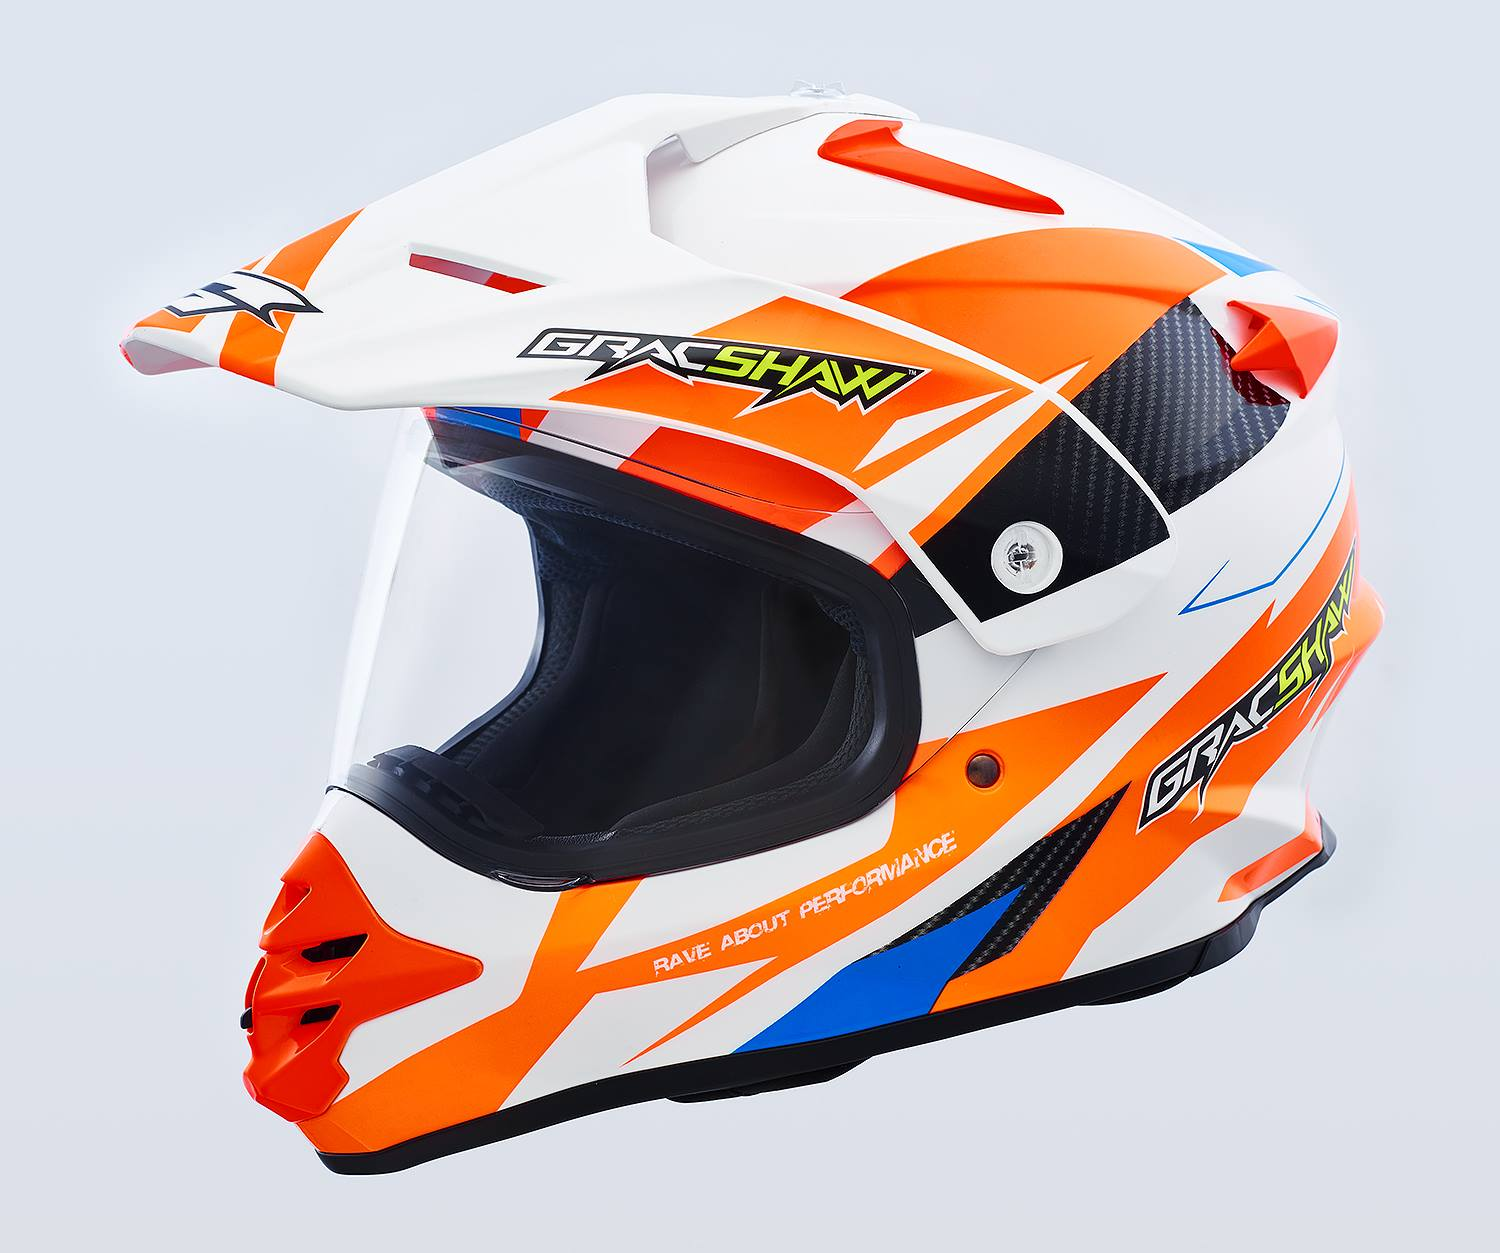 Get adventurous with the new Gracshaw Gazzer and Gazzer DV helmets